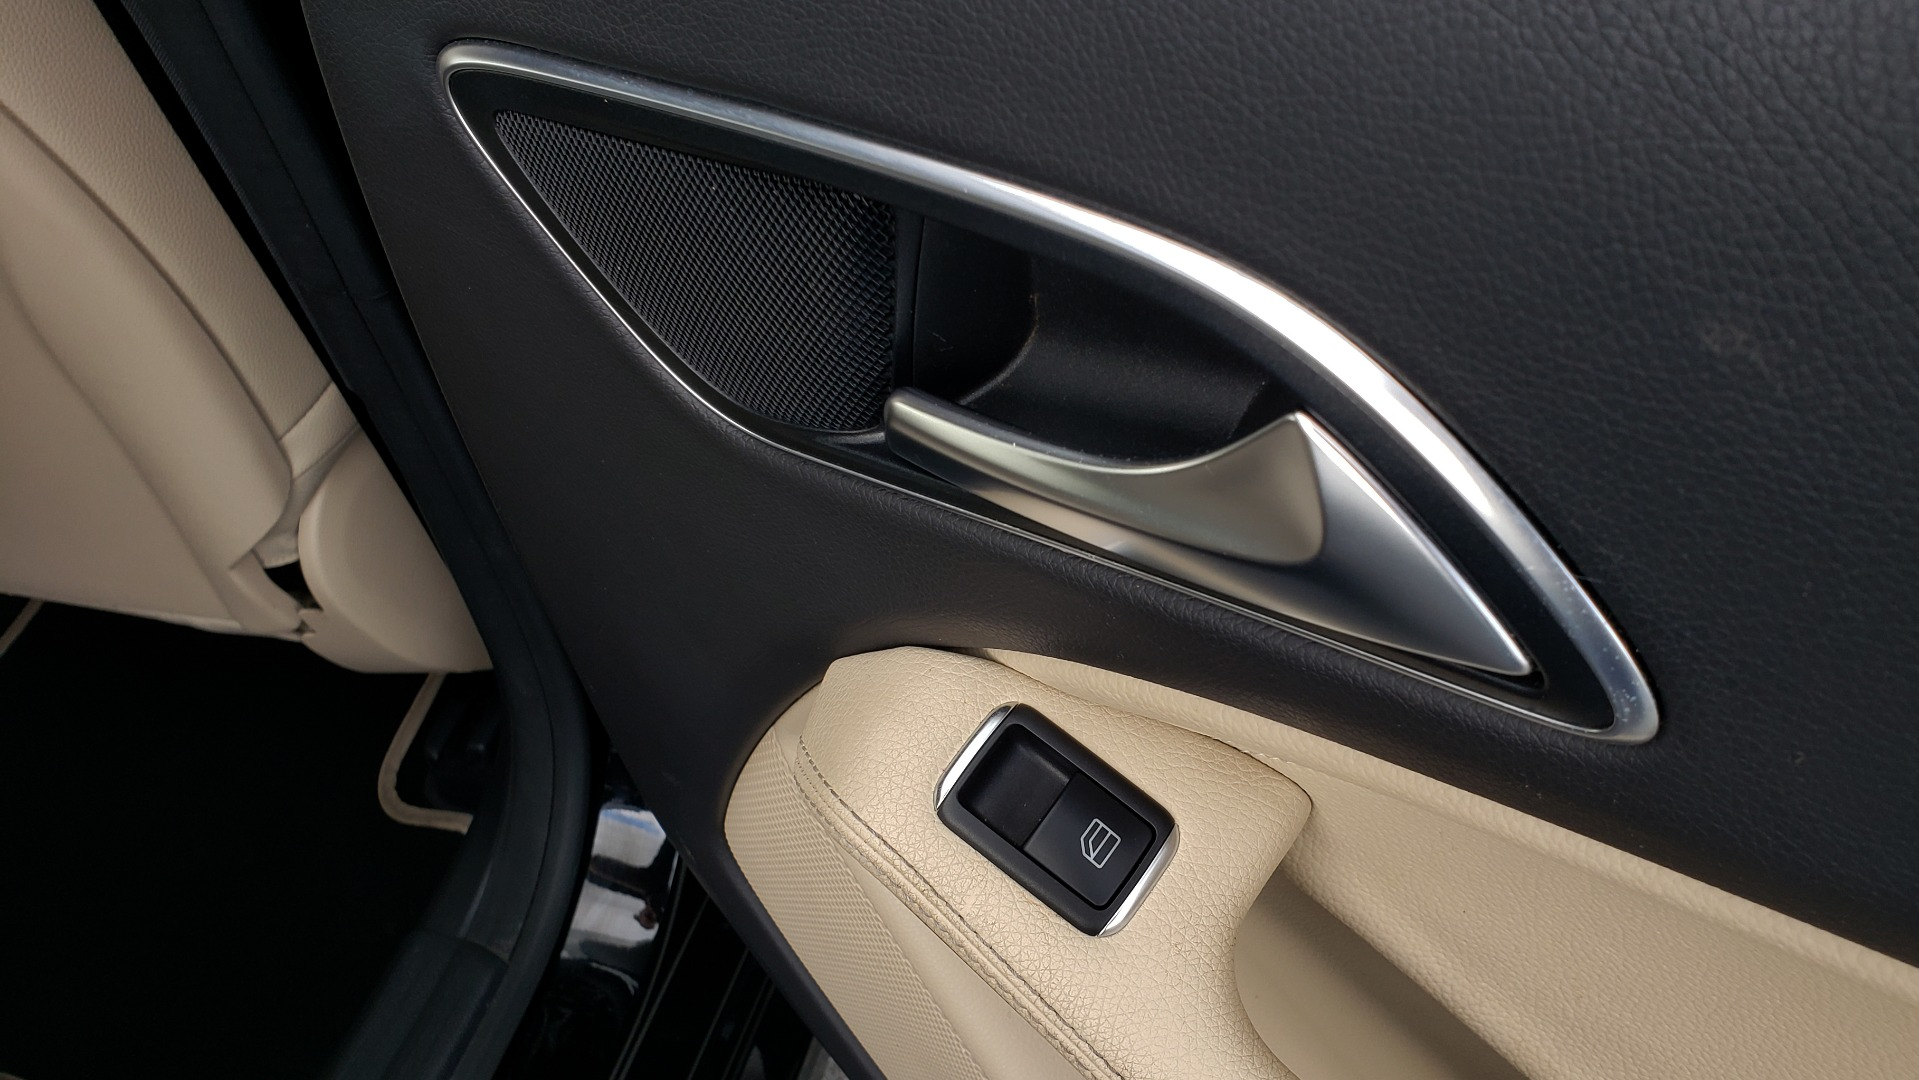 Used 2018 Mercedes-Benz CLA 250 / HEATED SEATS / BSA / APPLE CARPLAY / ANDROID AUTO / 18IN WHEEL for sale $24,195 at Formula Imports in Charlotte NC 28227 67